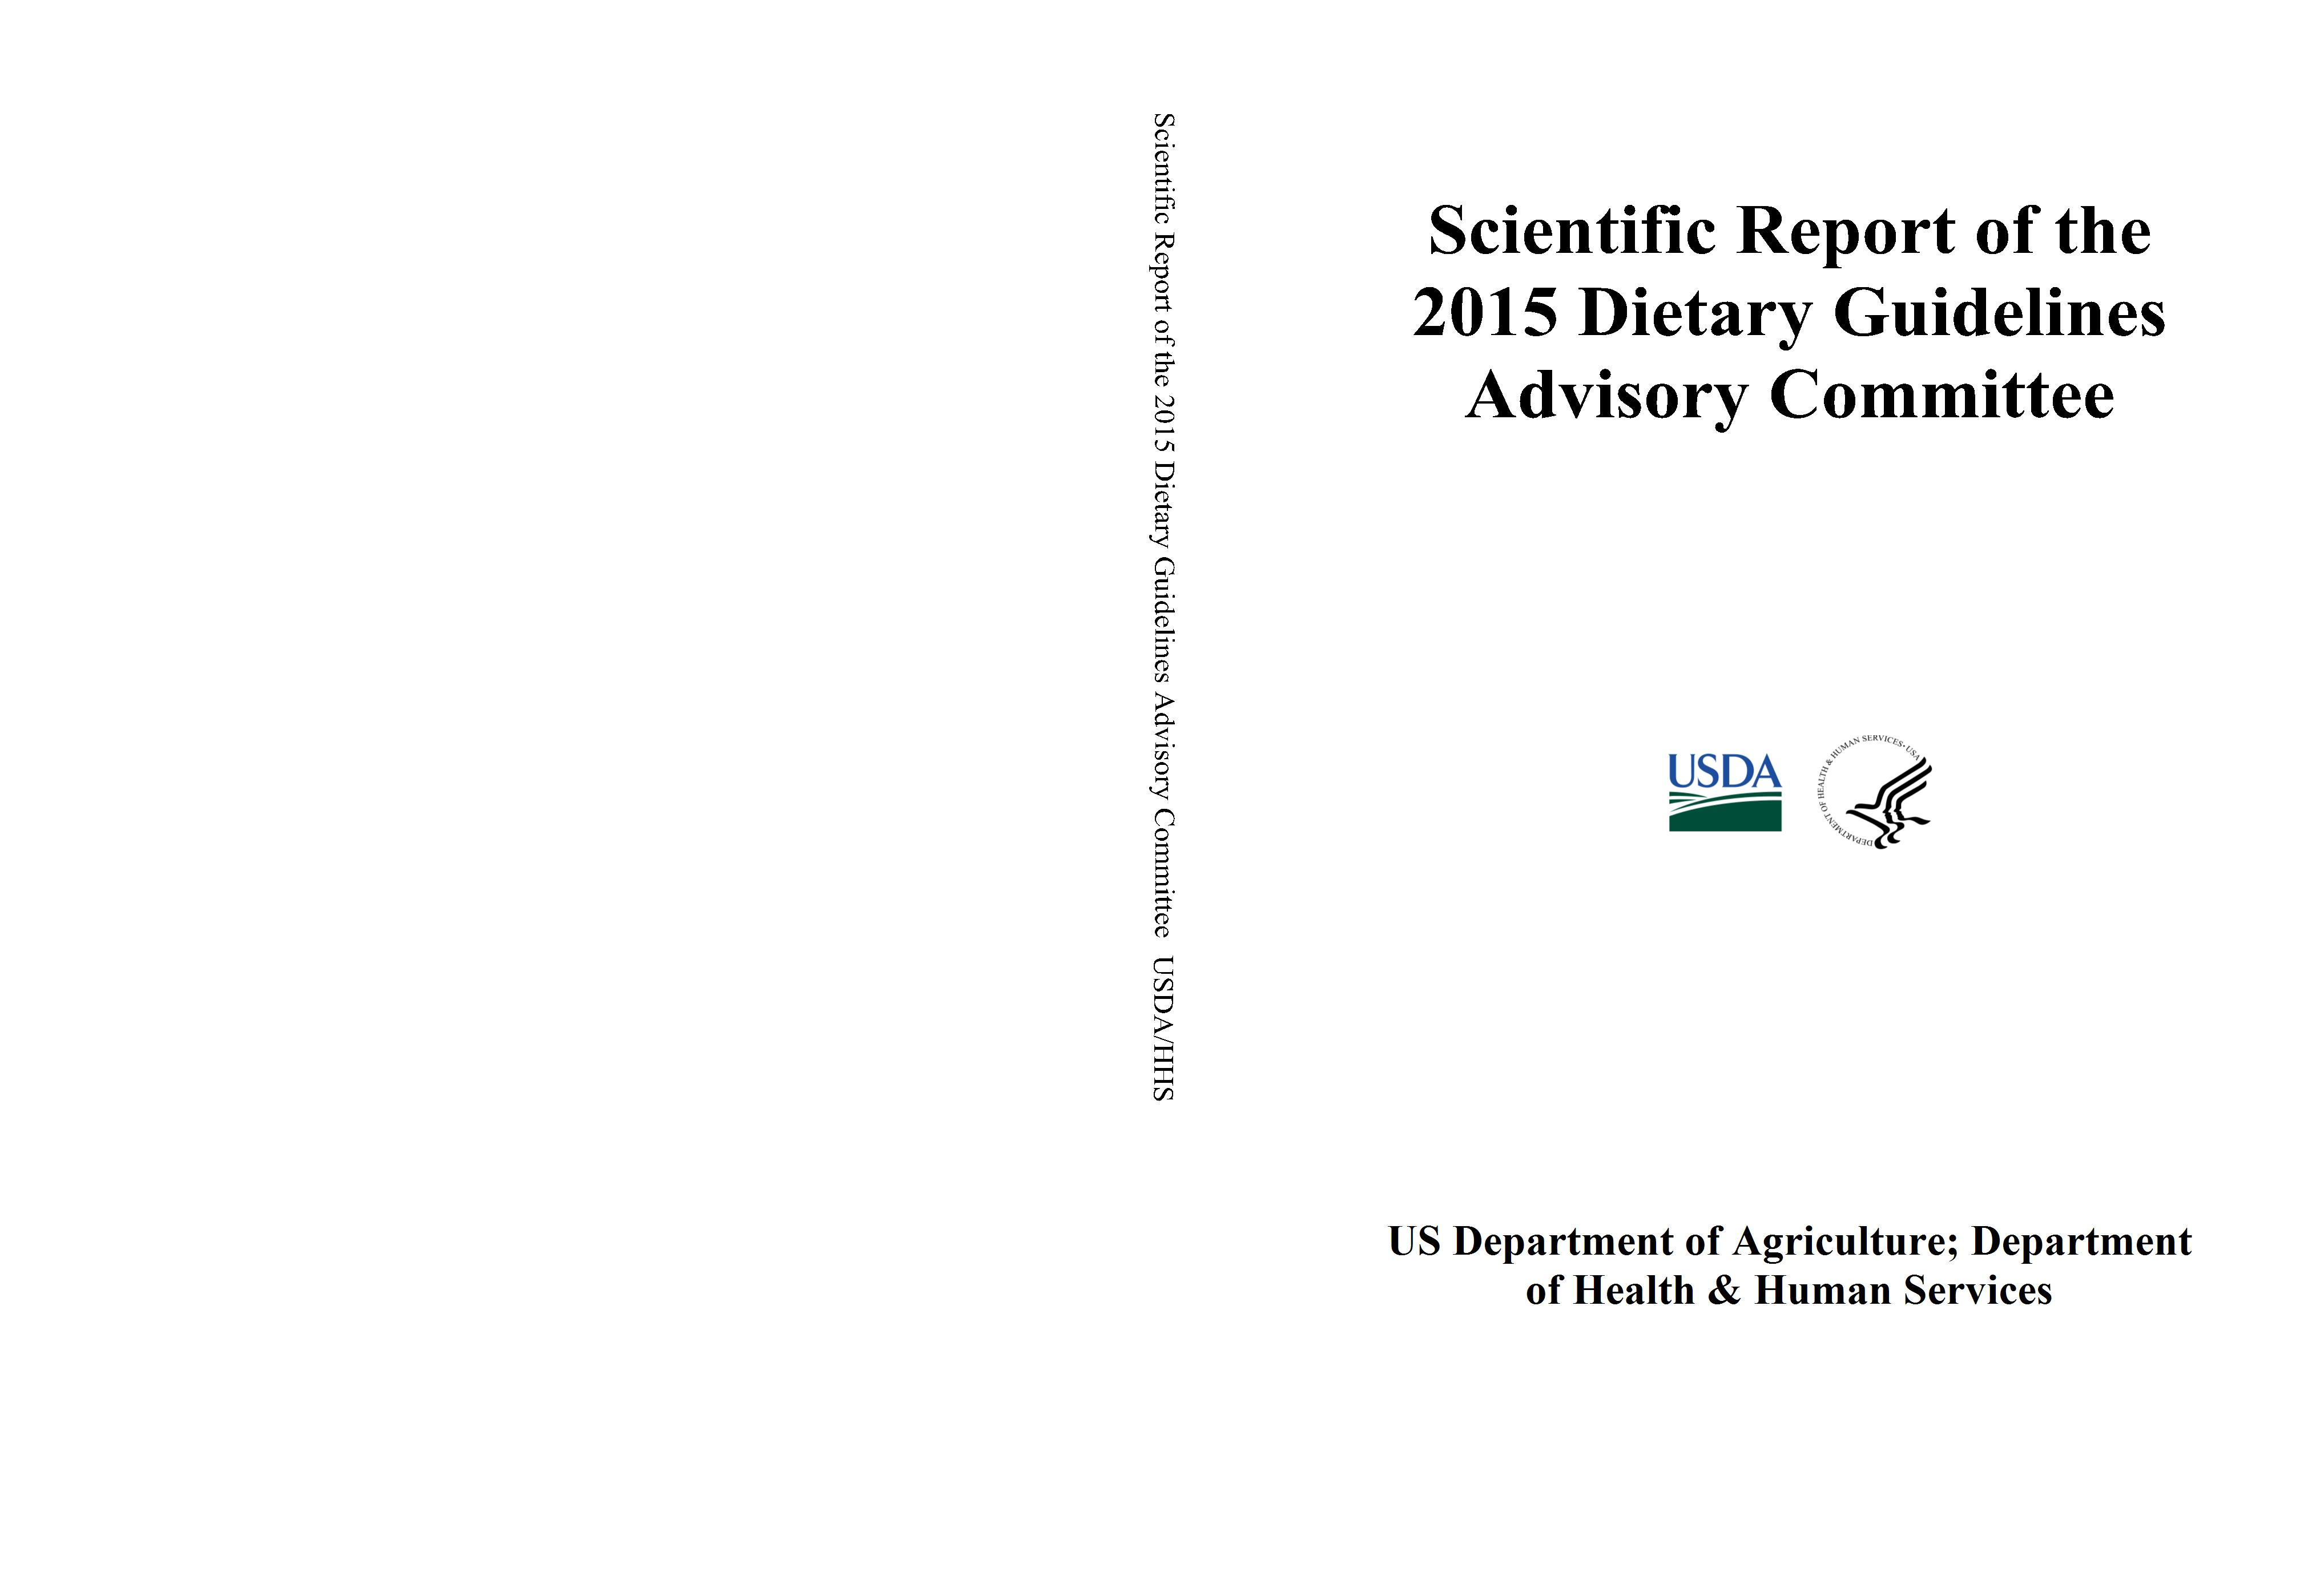 Scientific Report of the 2015 Dietary Guidelines Advisory Committee cover image